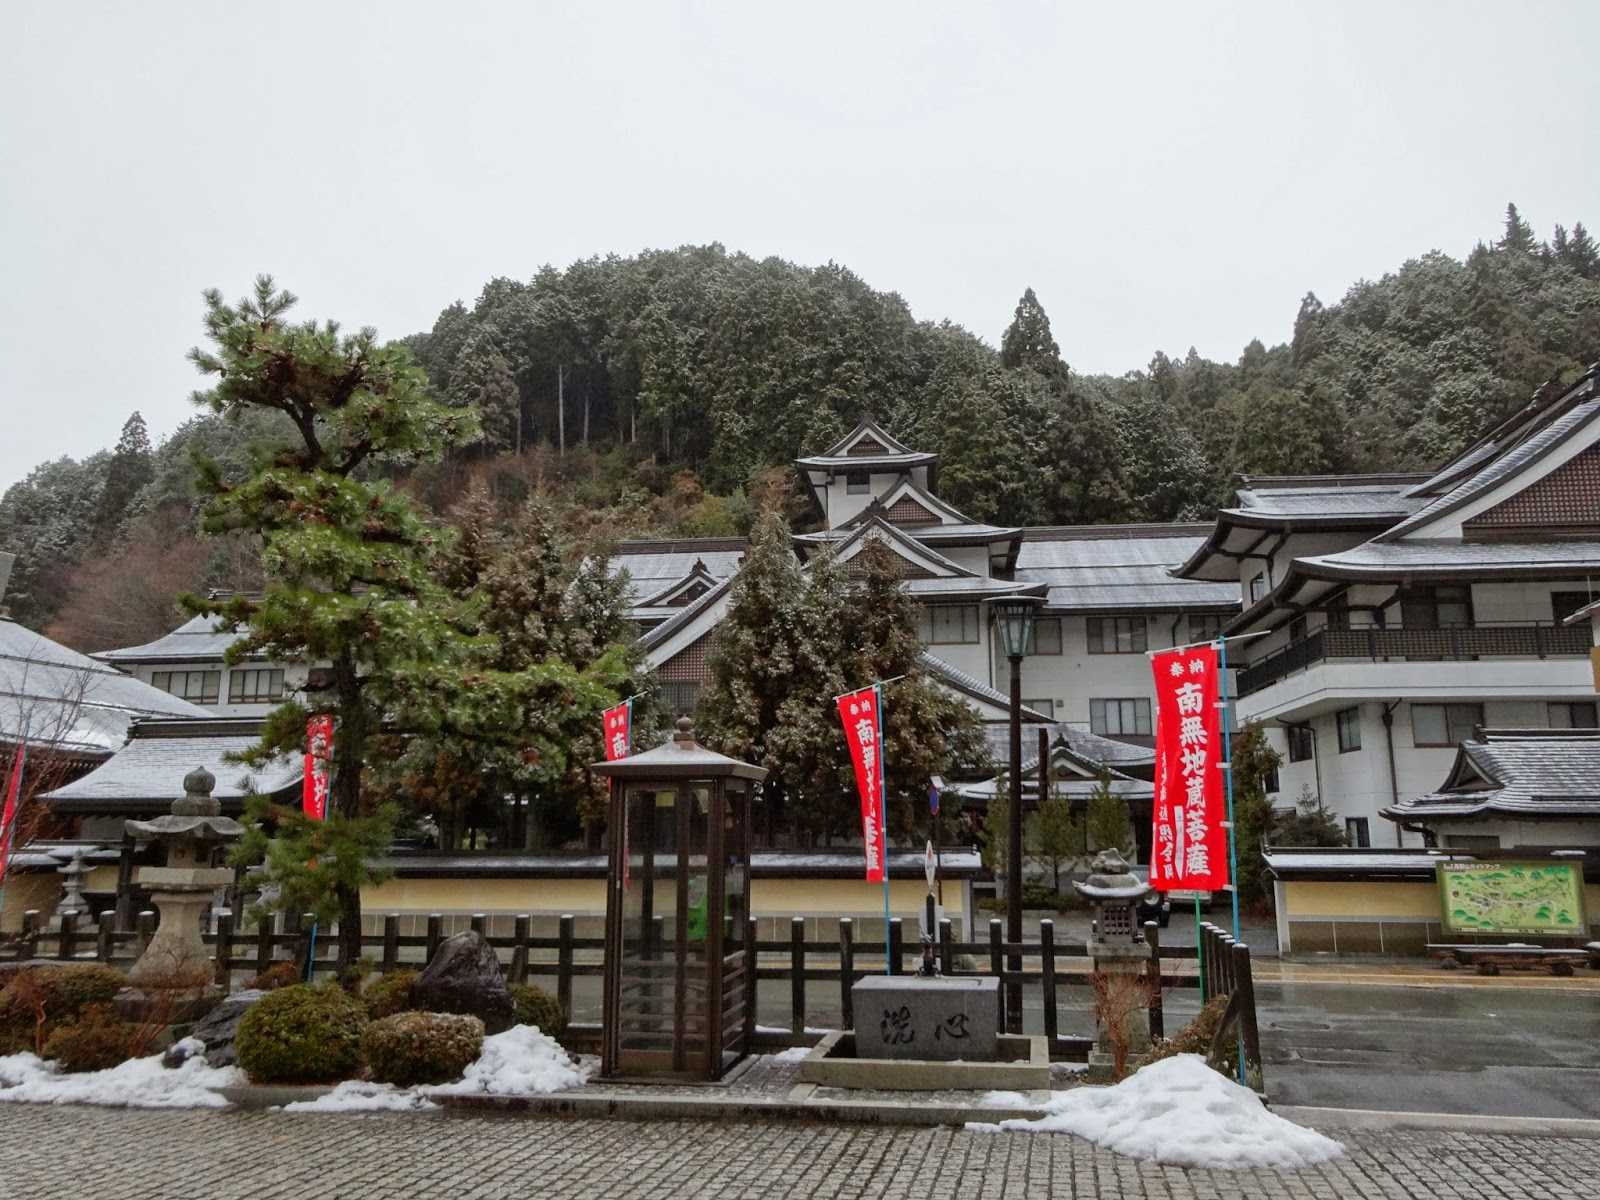 Snow in Koyasan